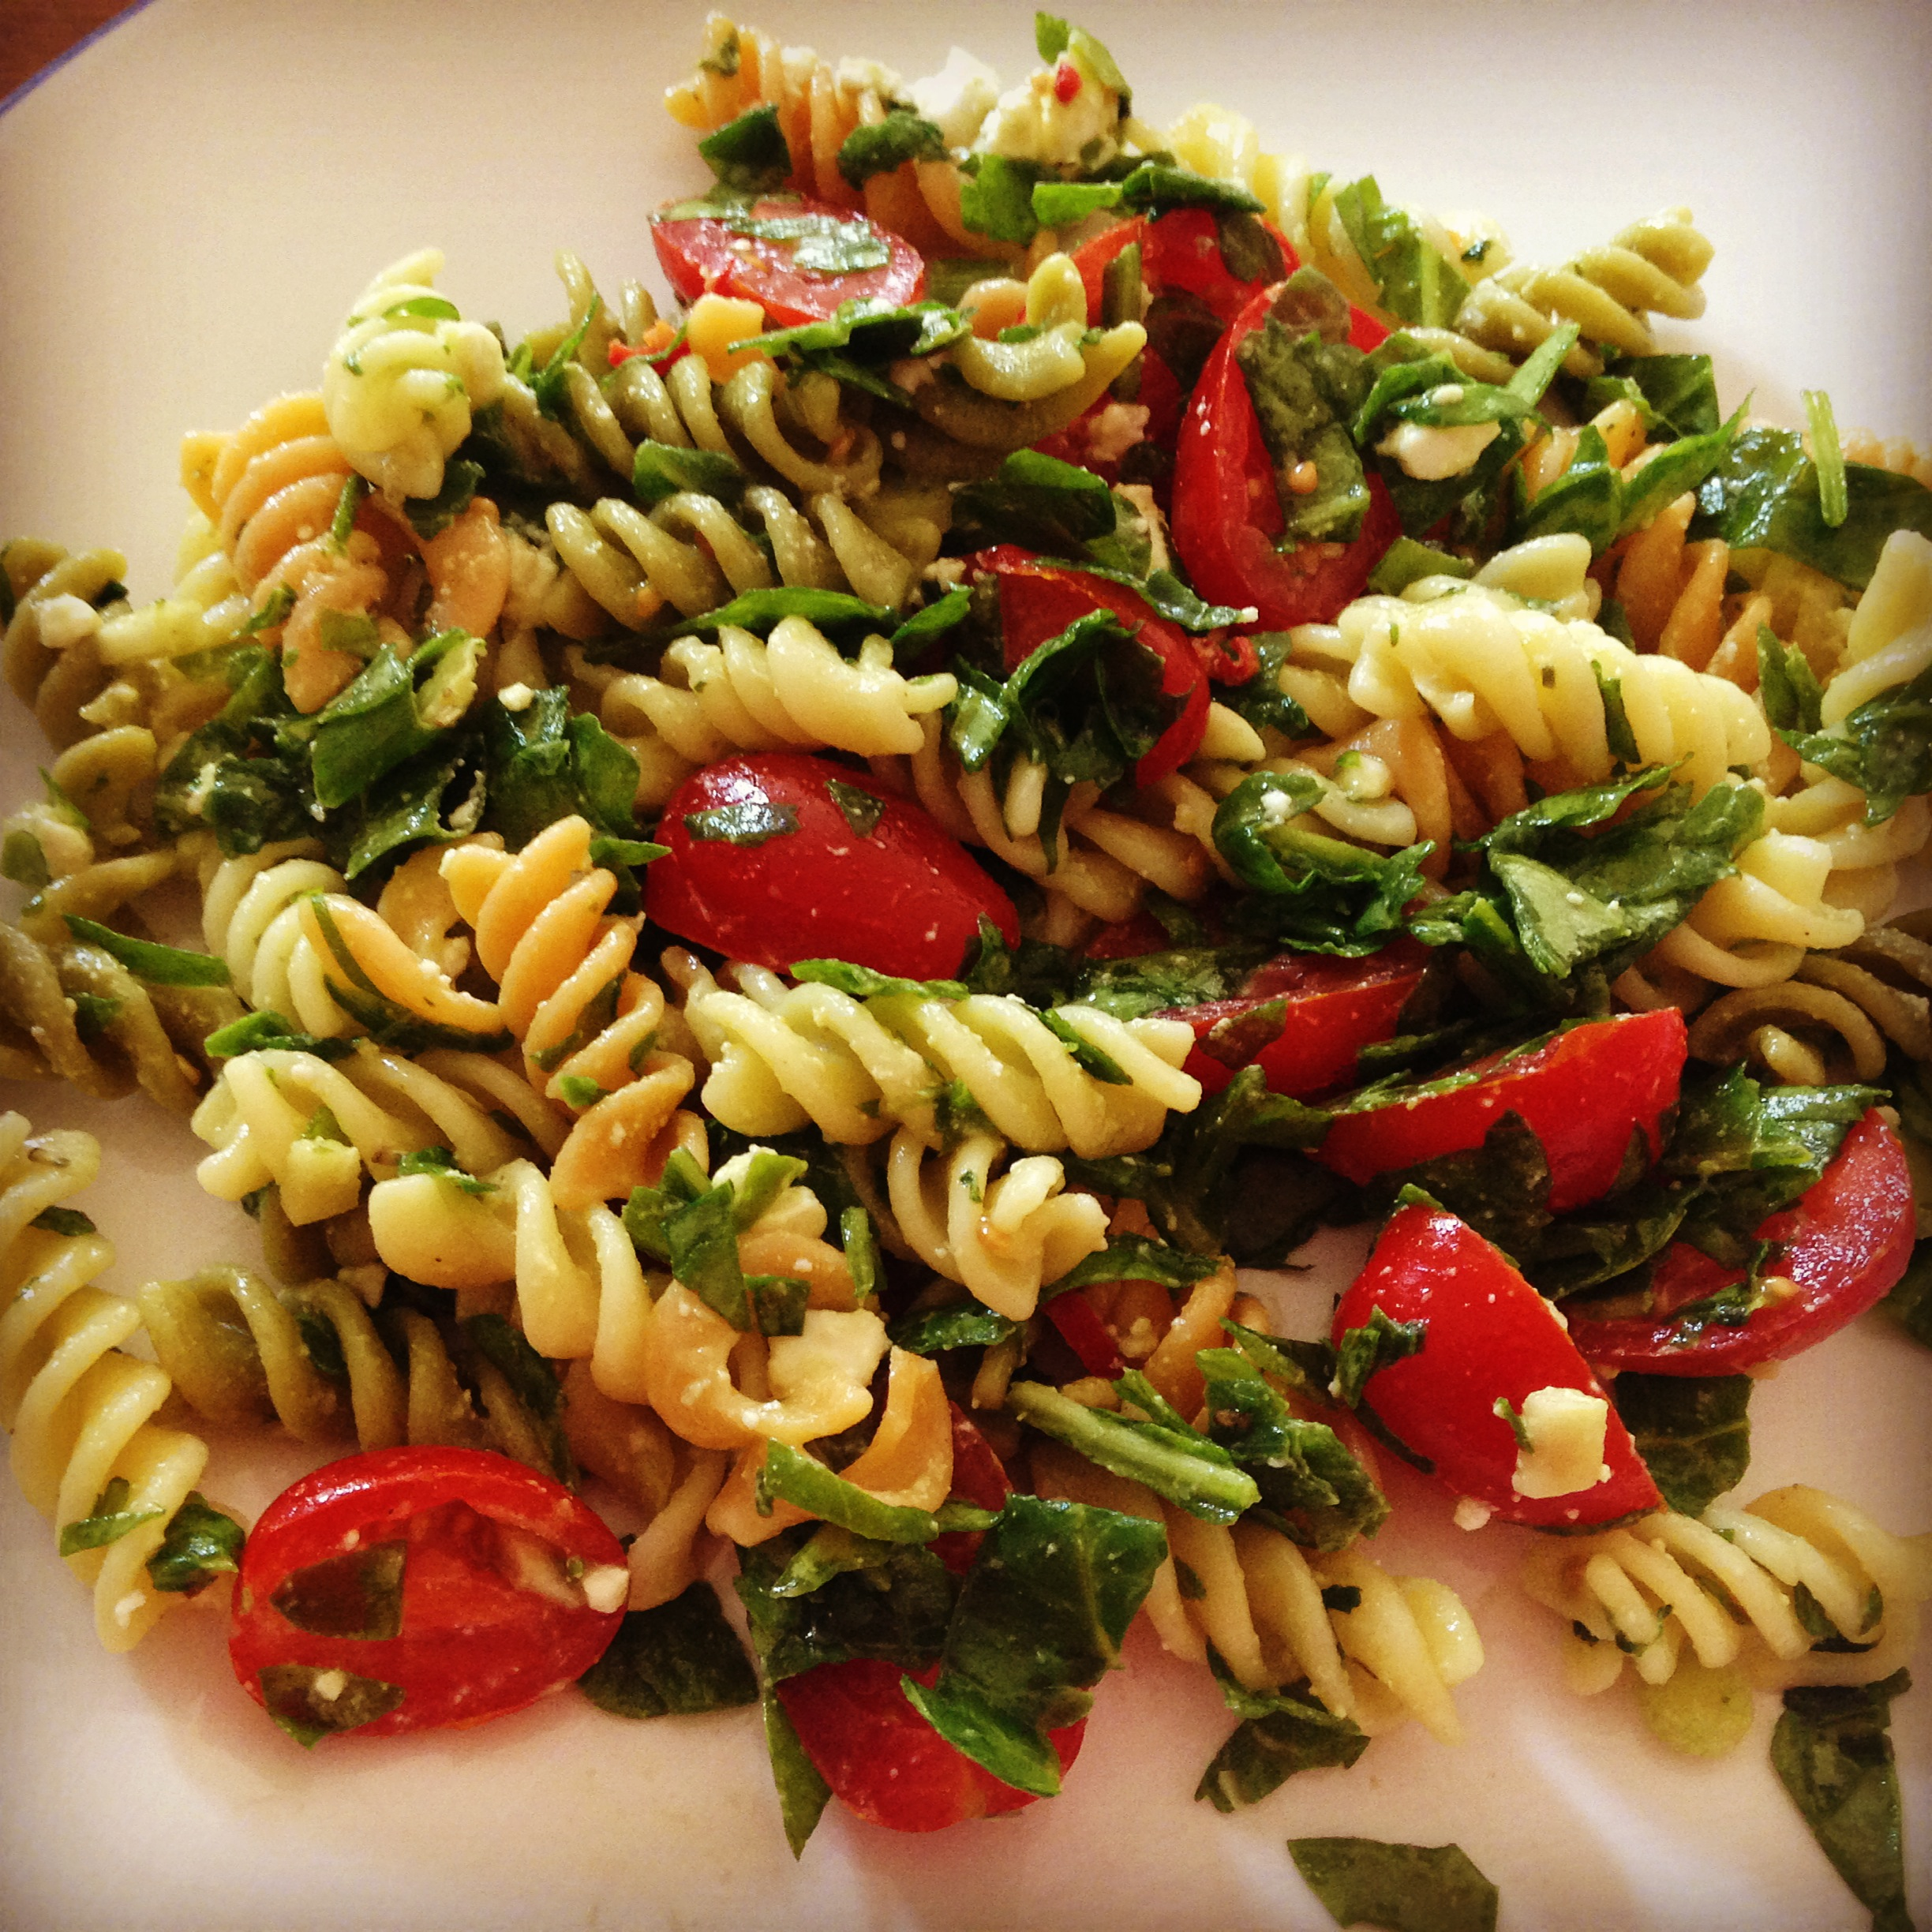 Fusilli Salad with Tomatoes, Spinach, Feta & Red Chilli